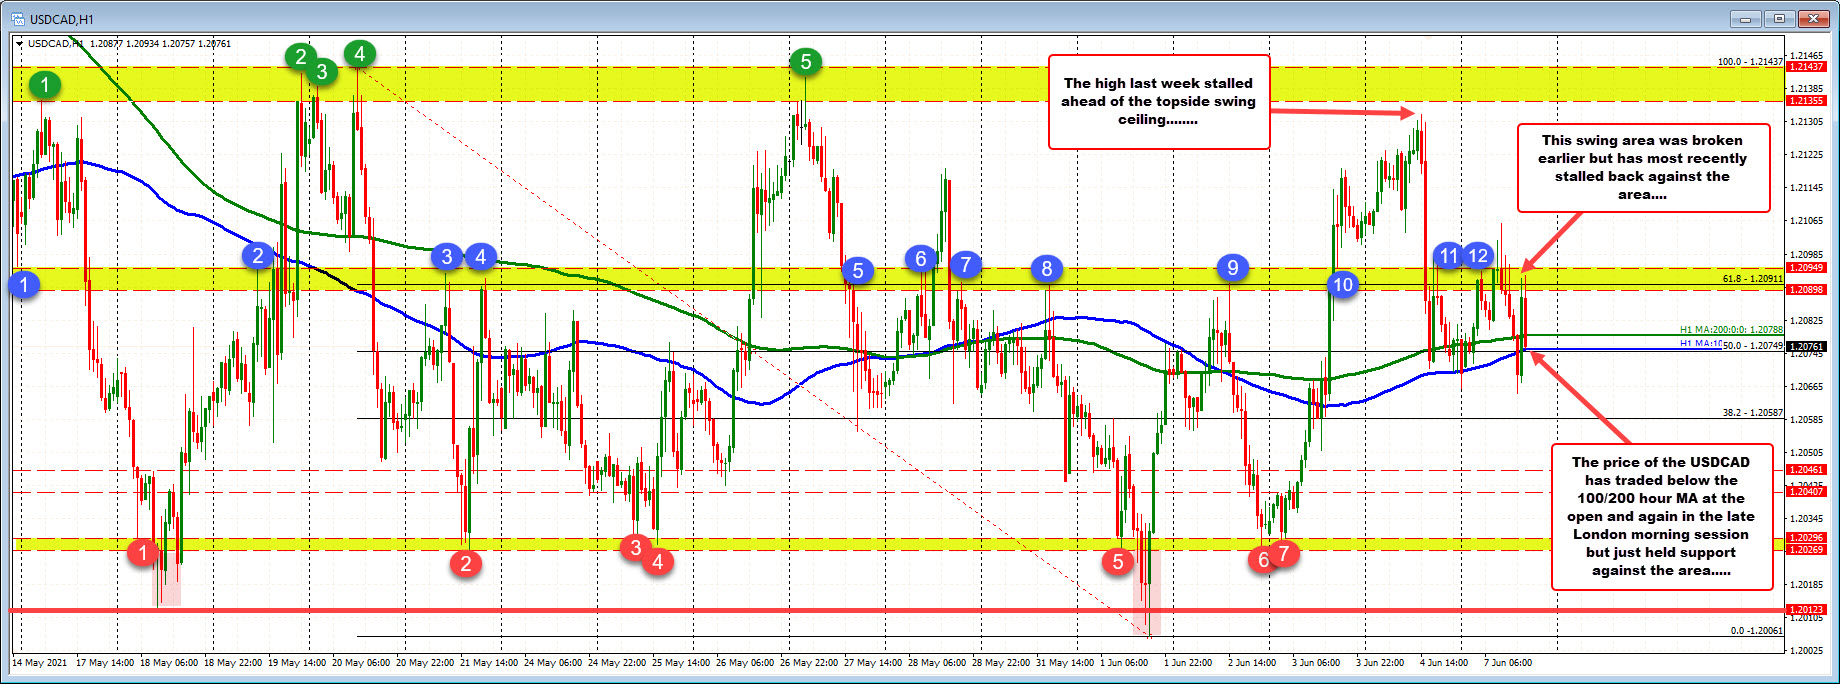 Up and down trading to start the week with buyers failing above resistance and sellers failing below technical support